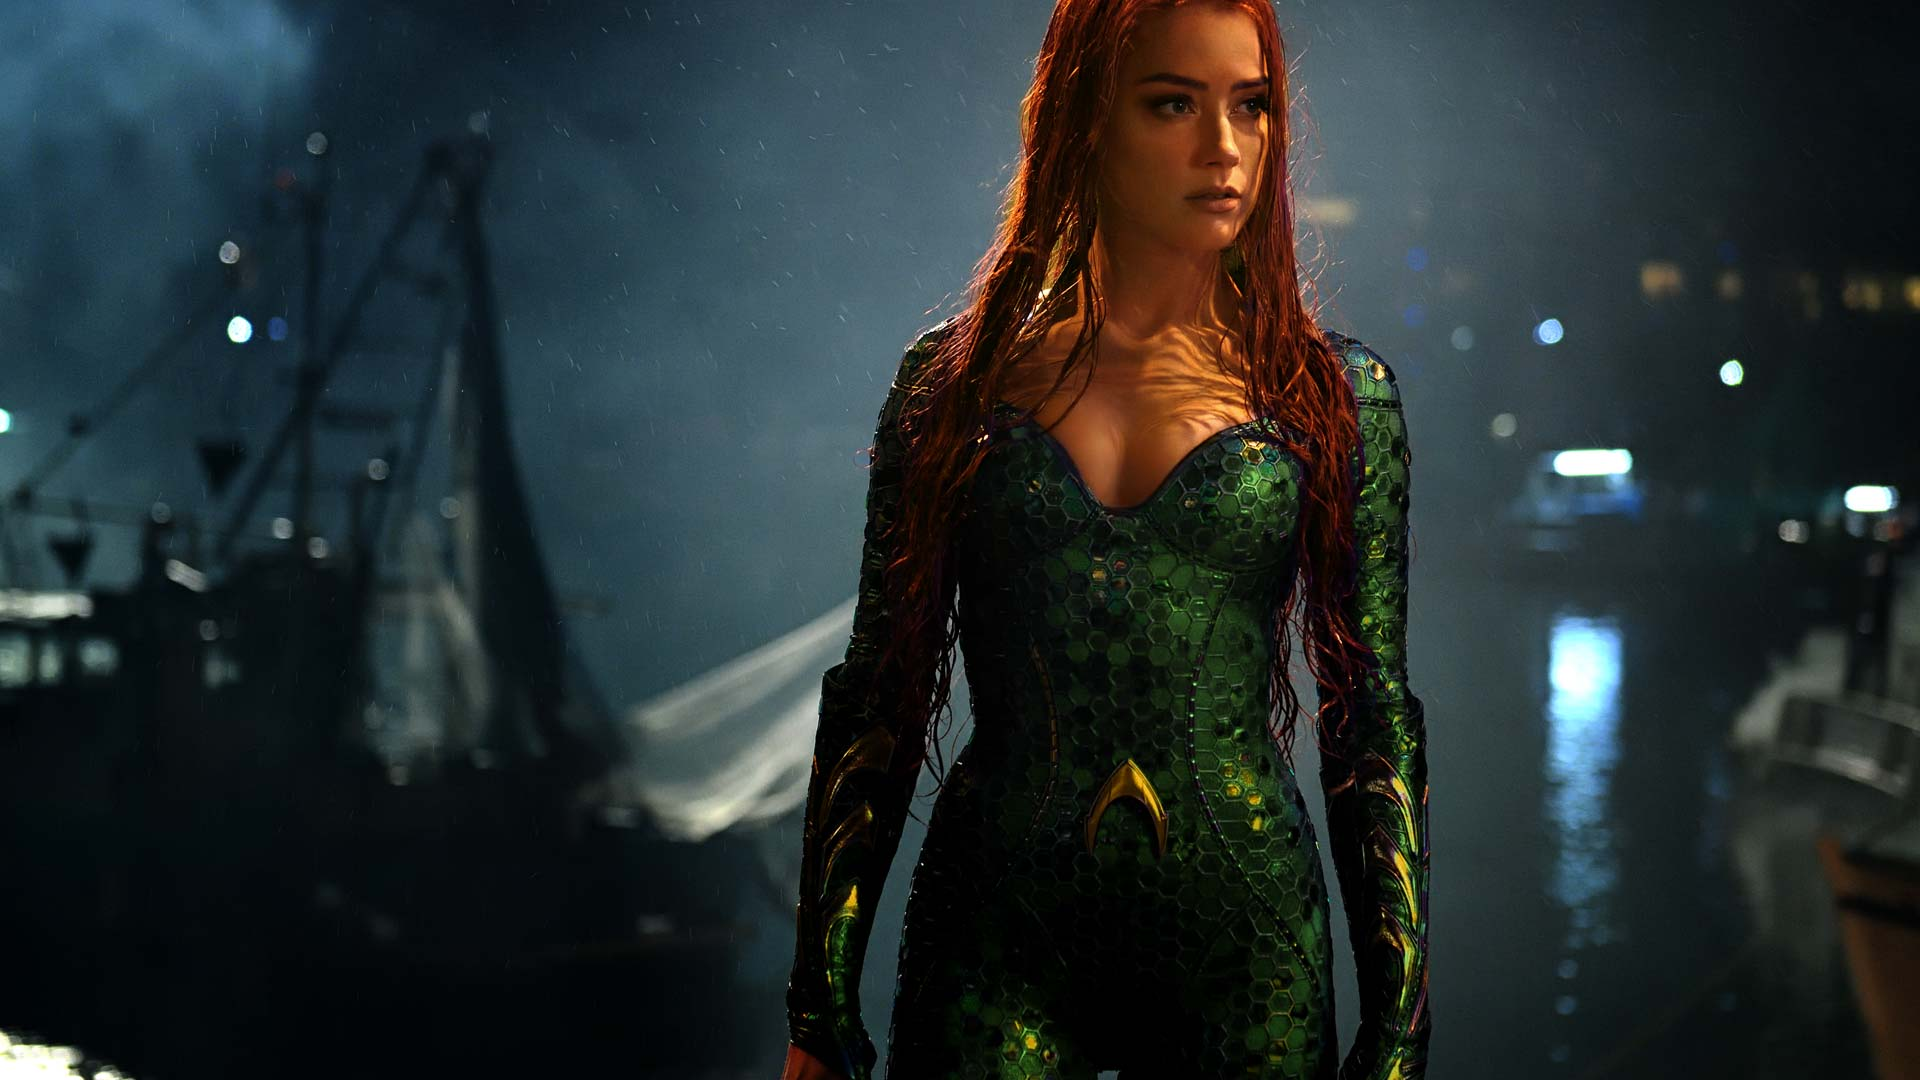 Amber Heard as Mera in Aquaman (2018)